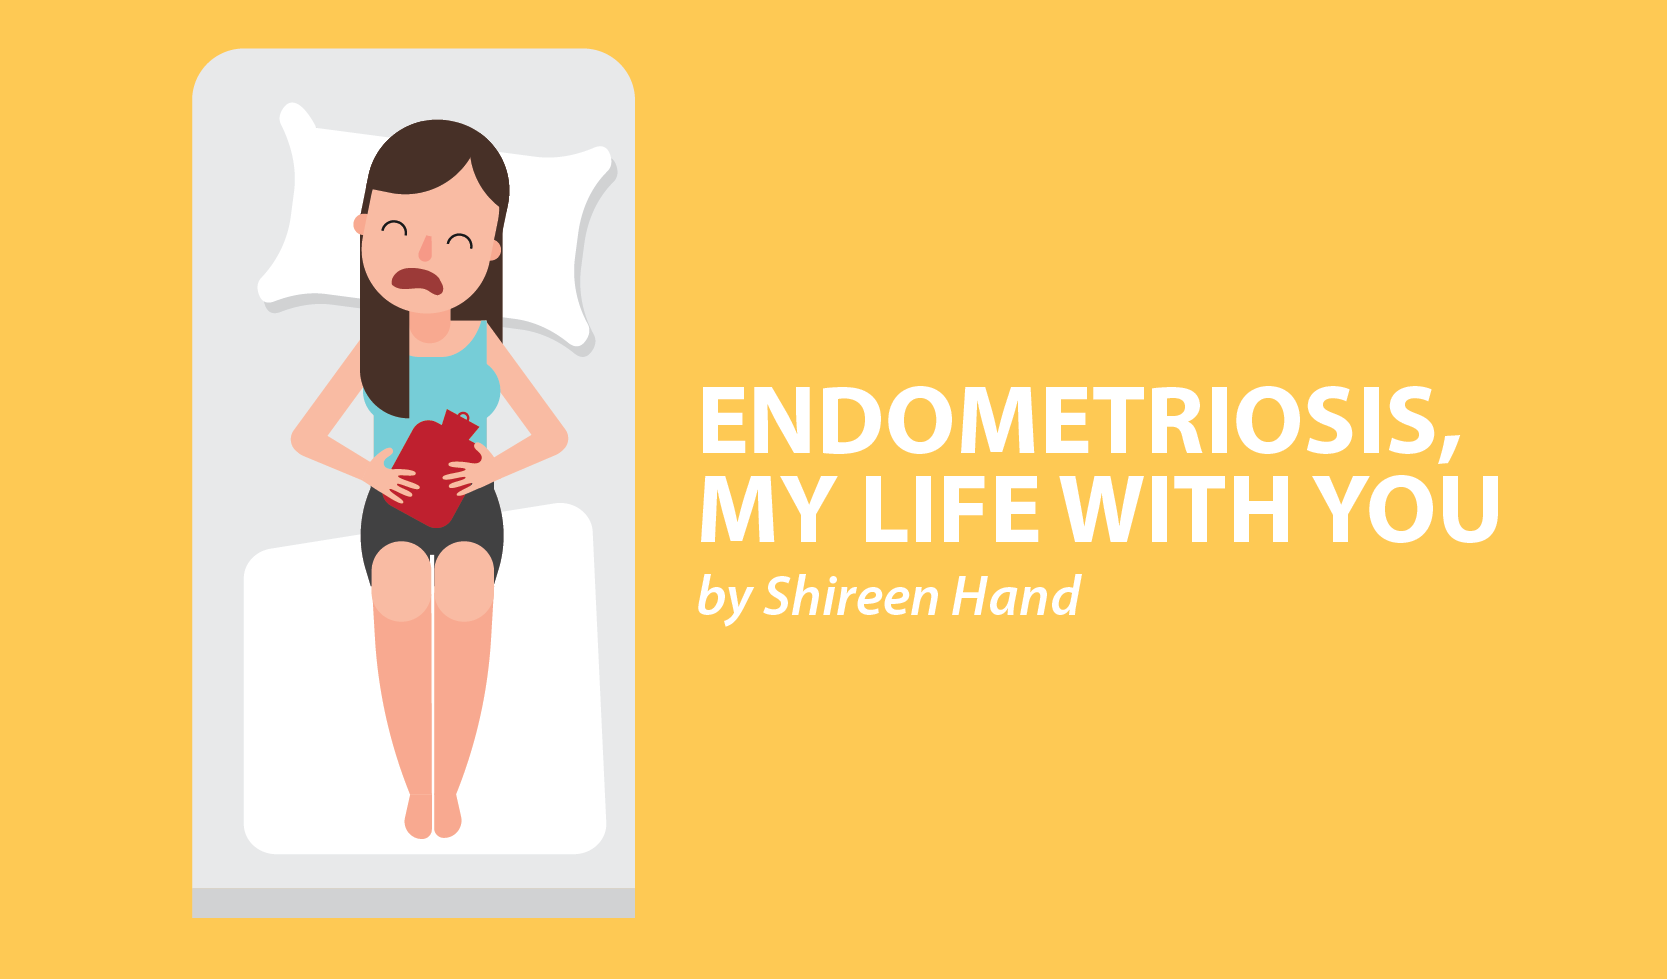 Shireen Hand Endometriosis My Life With You